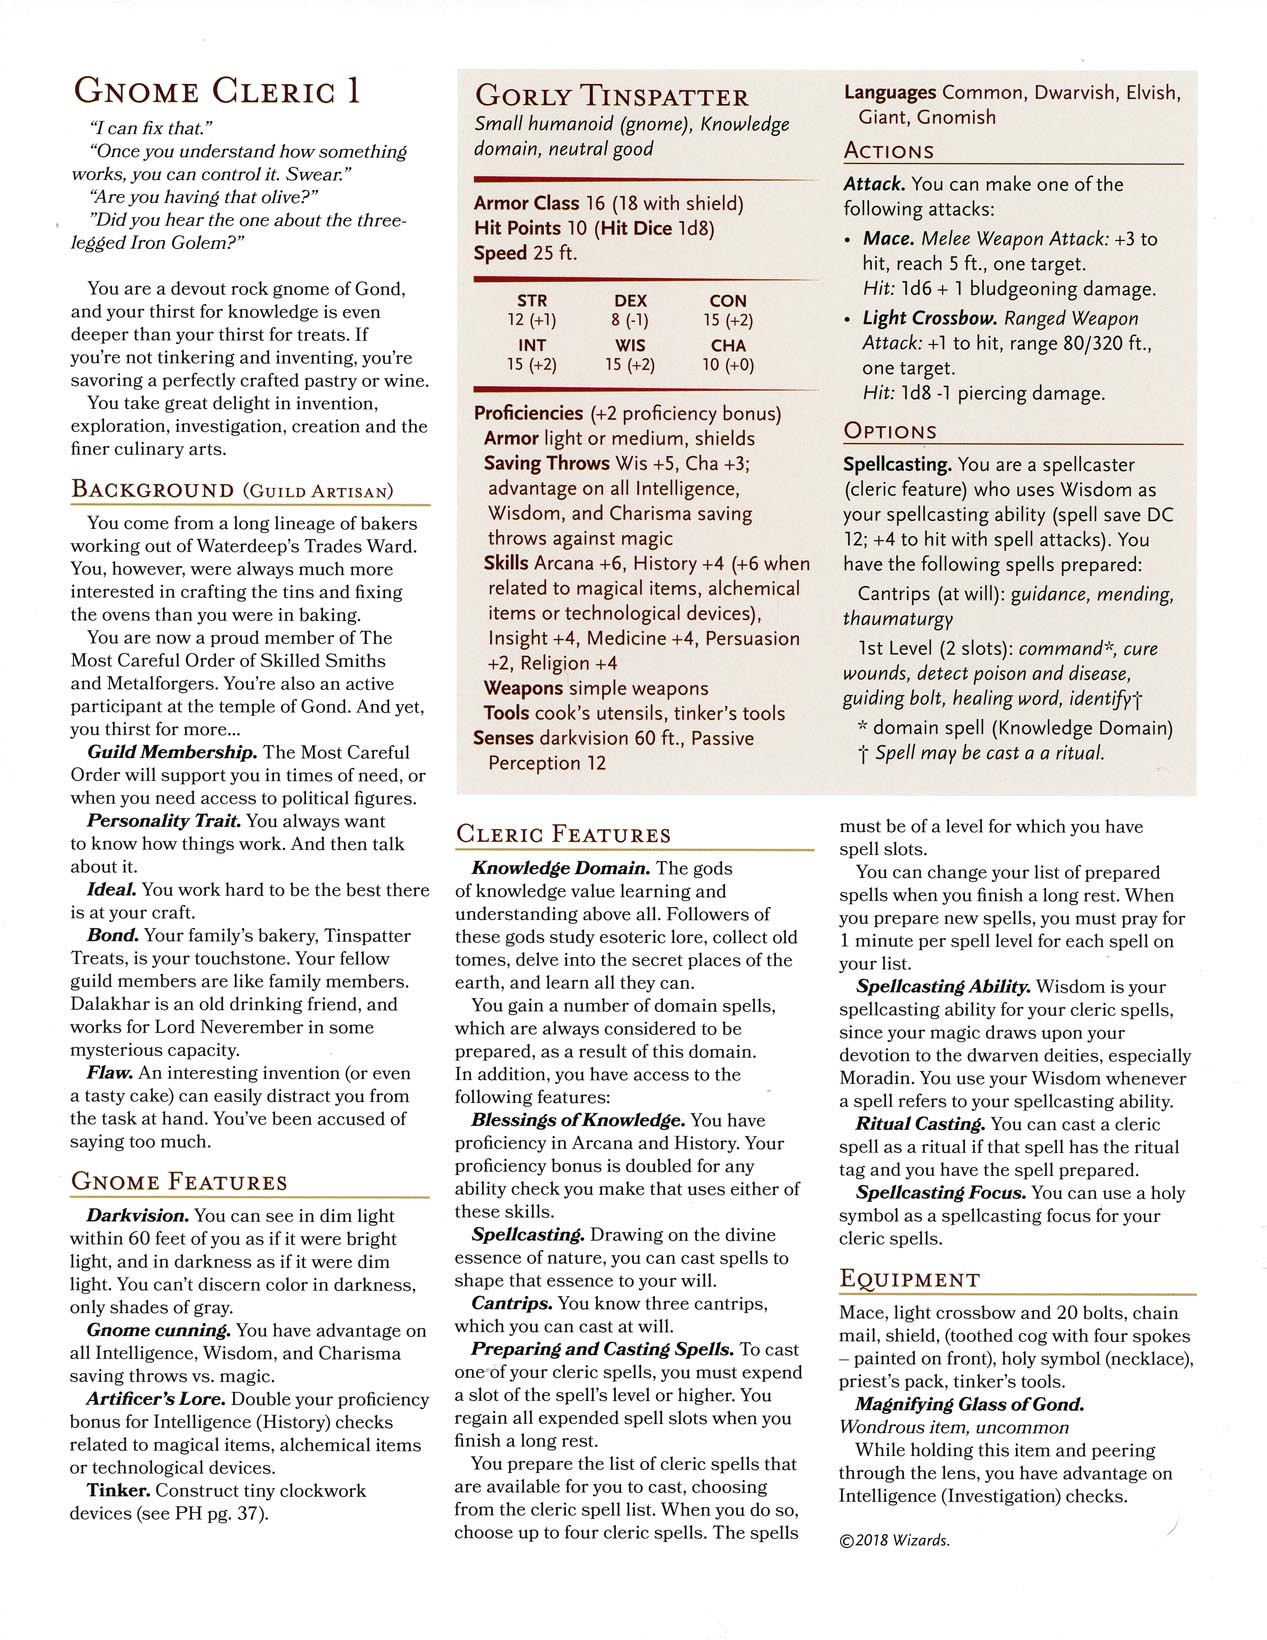 5th Edition Dungeons & Dragons Archive